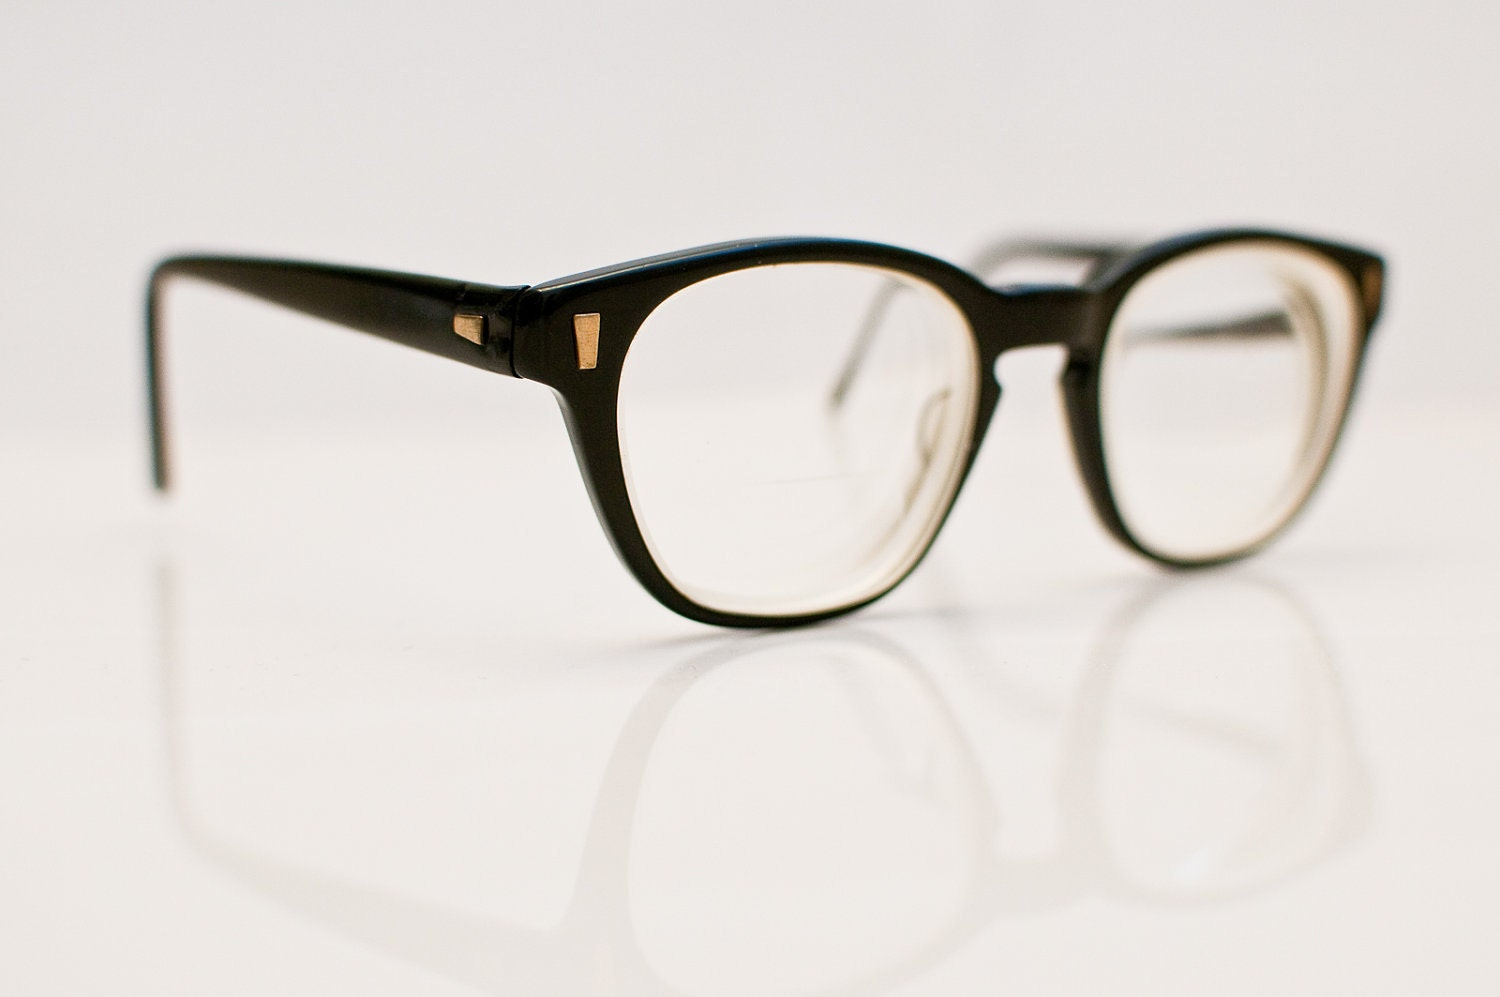 1960s Mens Glasses: G-Man Style by jenericVintage on Etsy